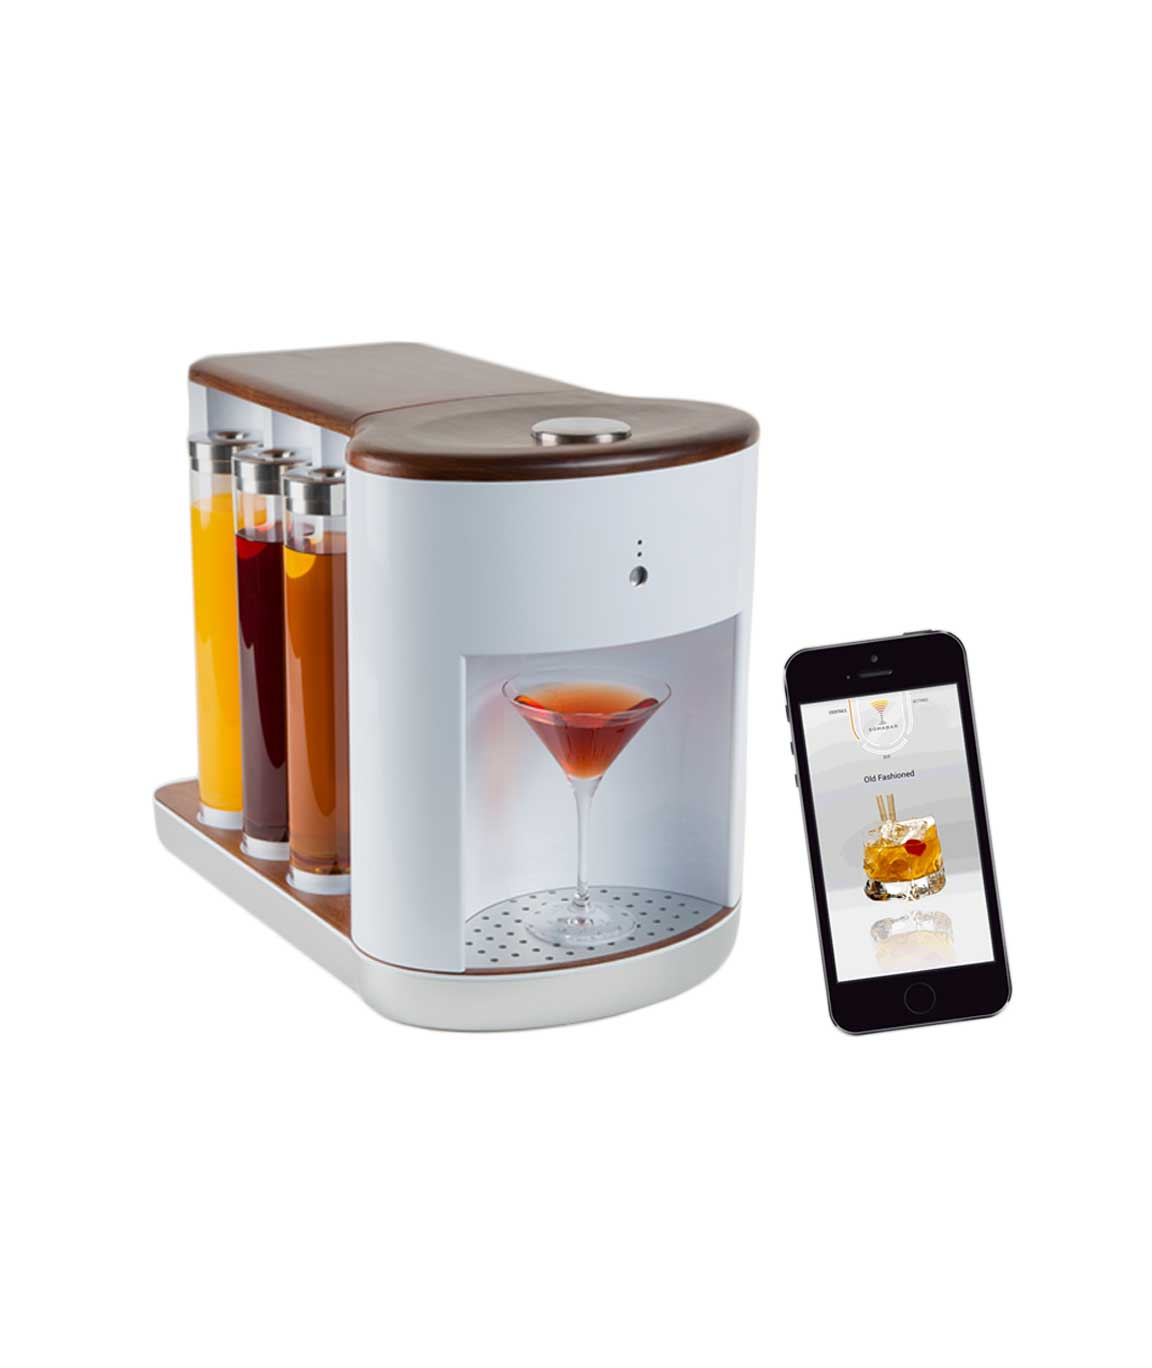 somabar-robotic-bartender-cocktail-machine